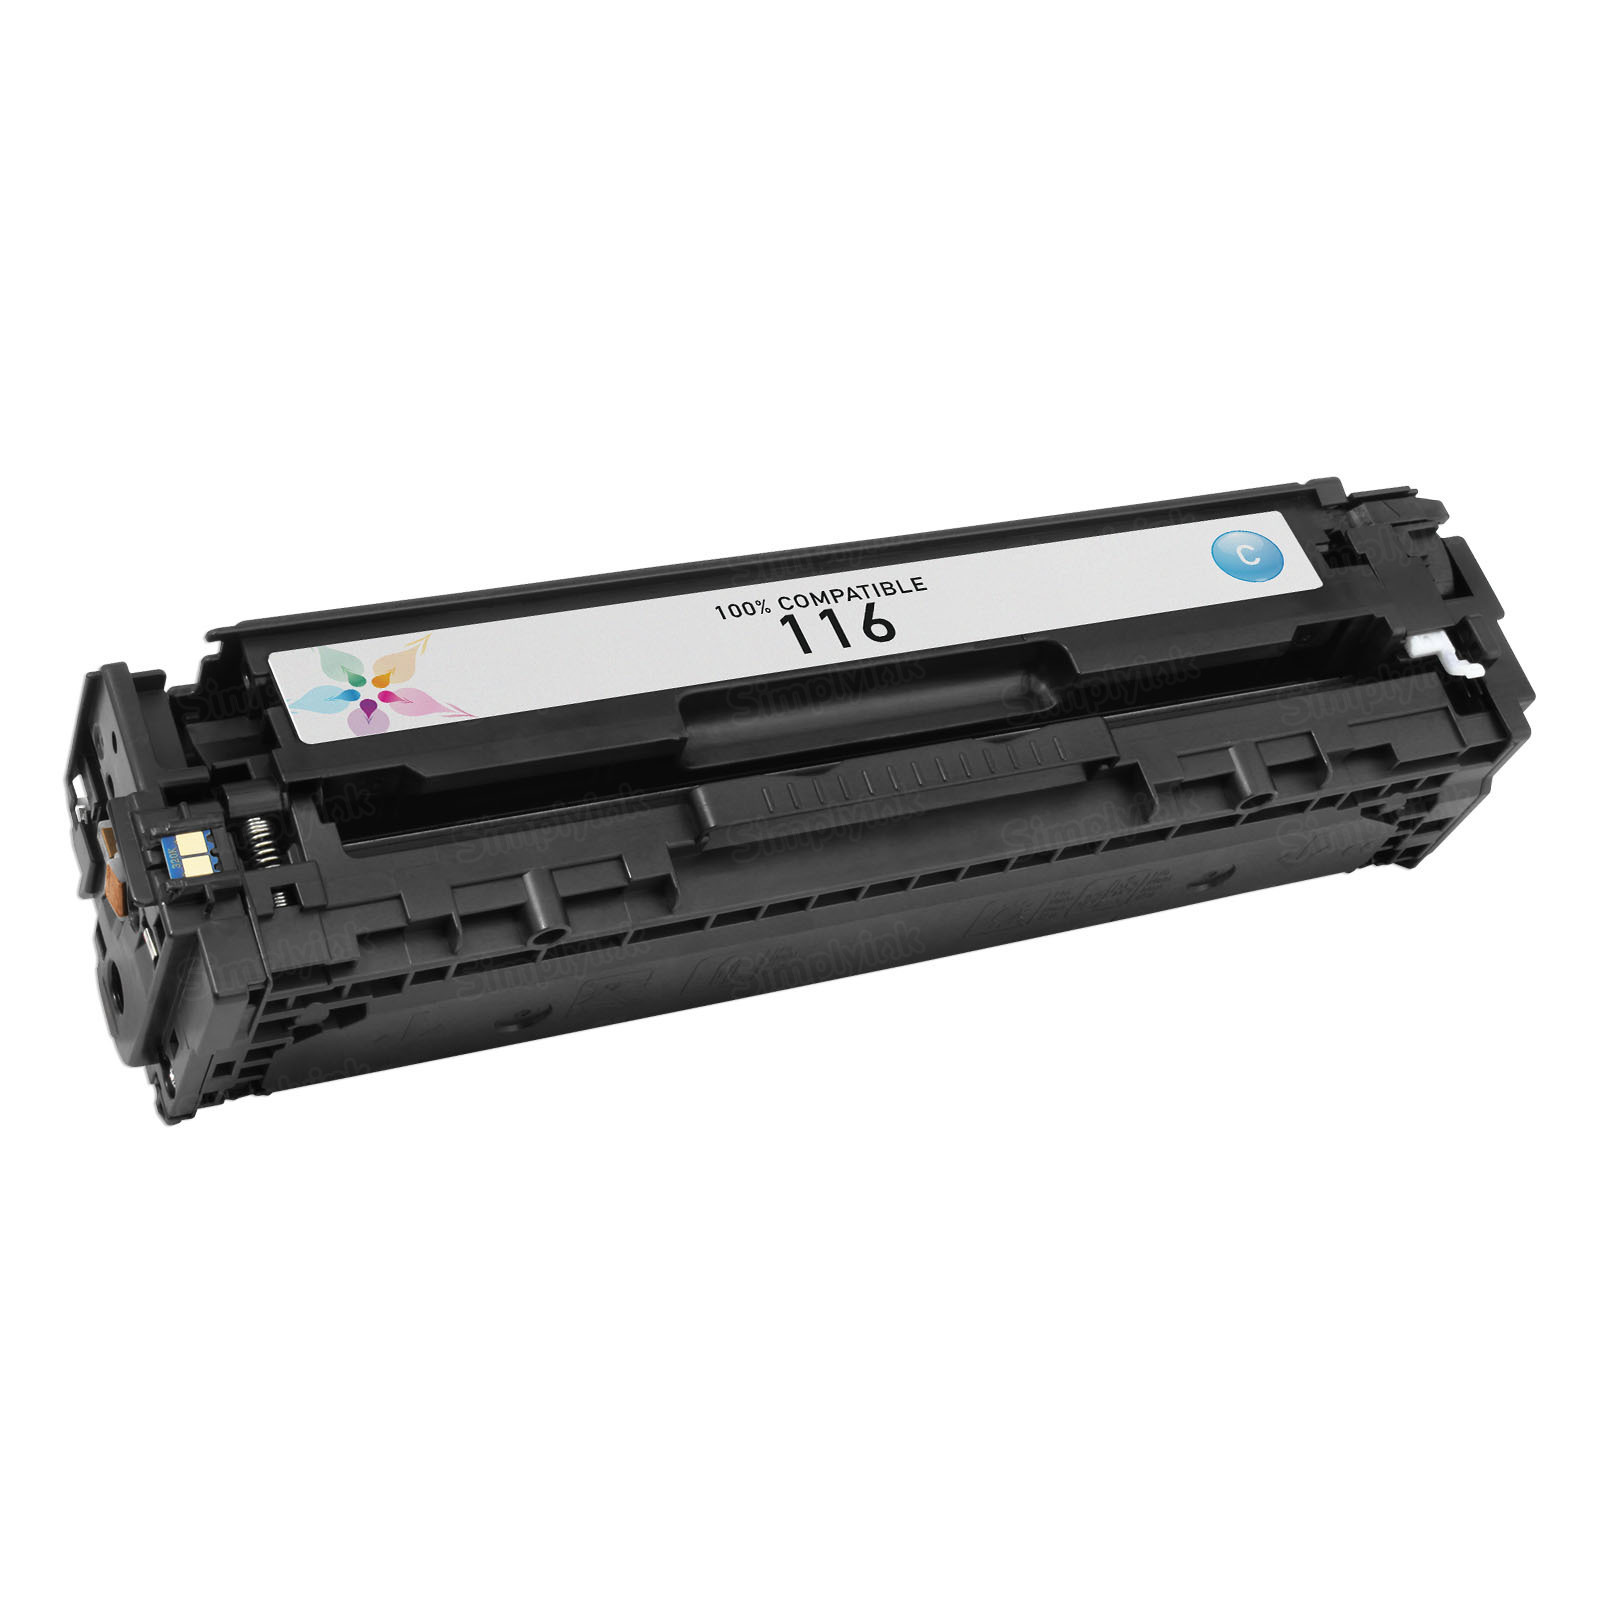 Compatible 116 Cyan Toner for Canon